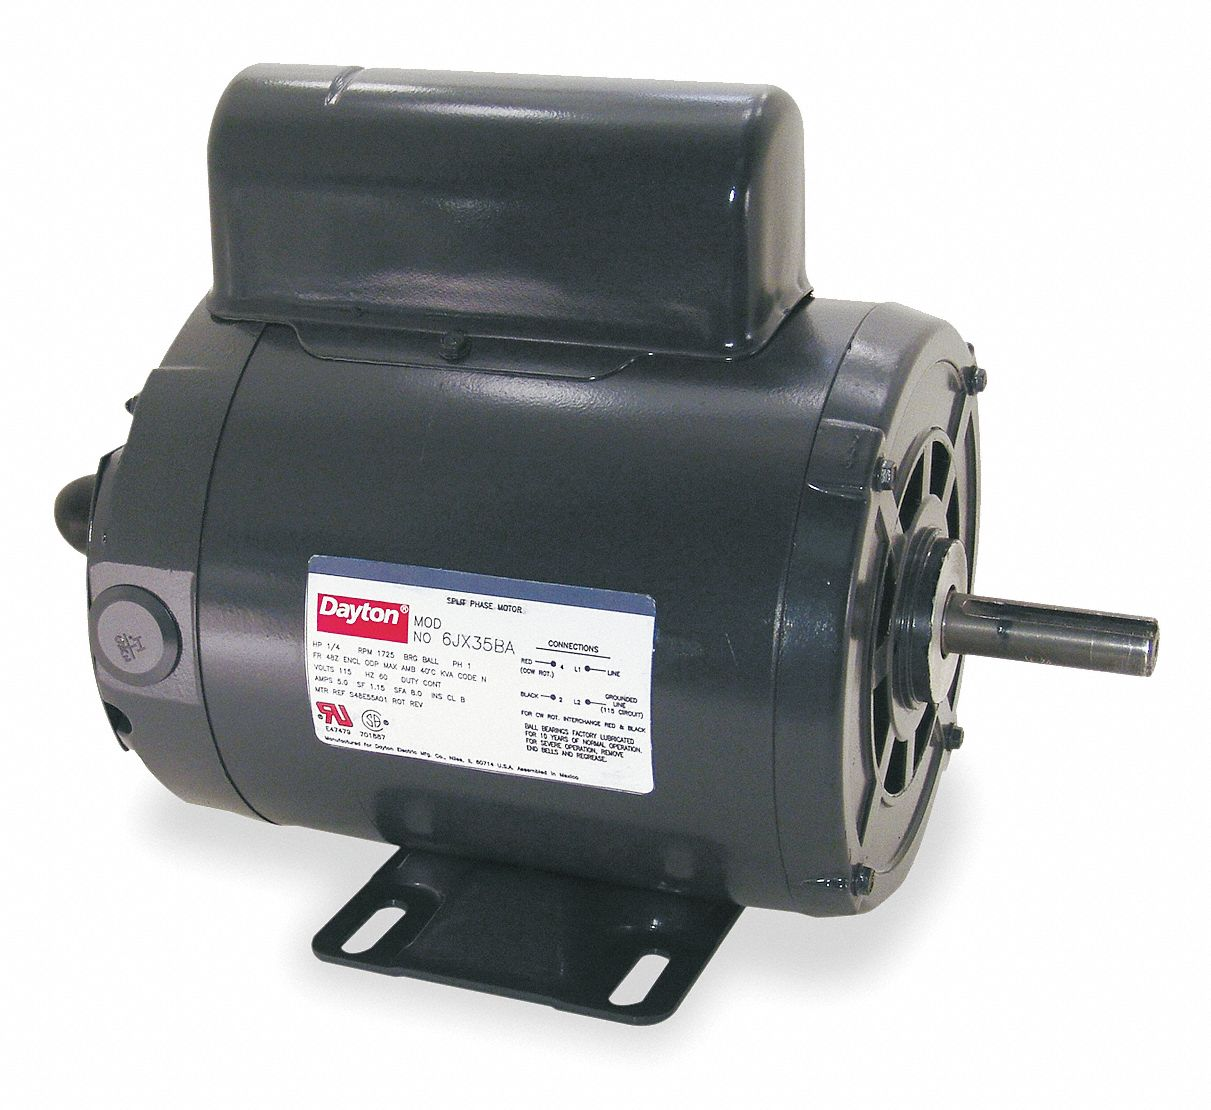 Dayton Power Tool Motor 1 2 Hp Capacitor Start Nameplate Rpm 1 725 Voltage 115 230v Ac 56 Frame 4k781 4k781bb Grainger